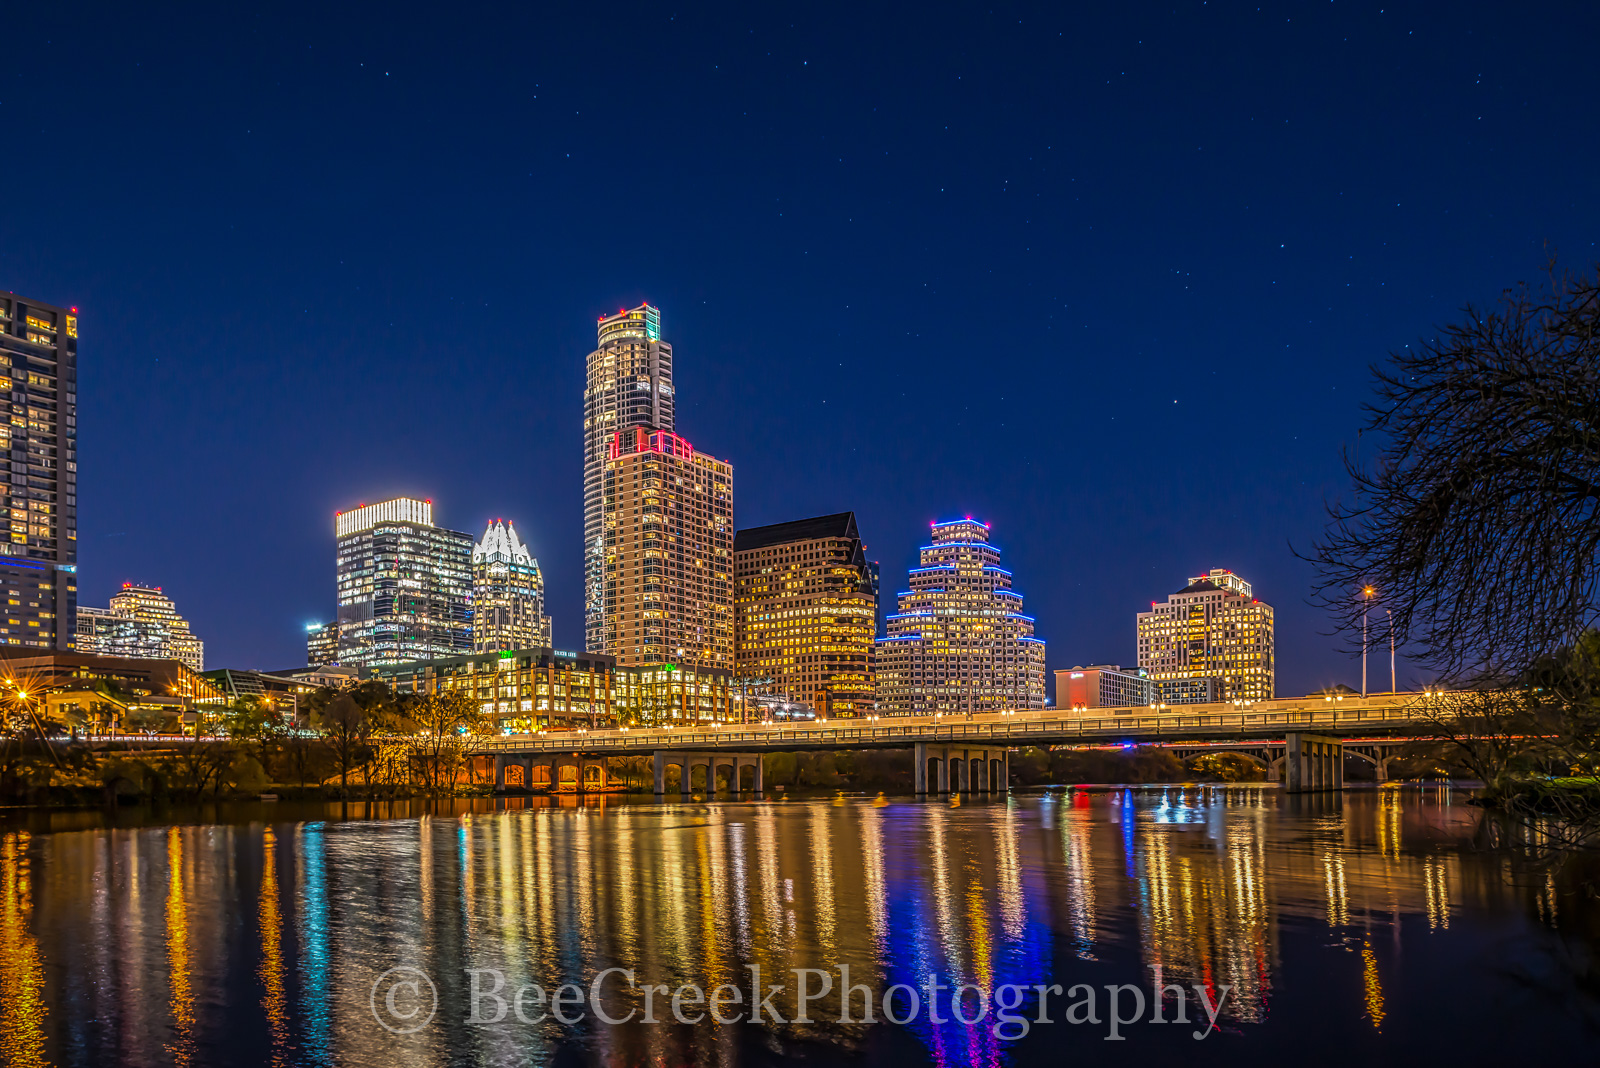 ustin skyline, Austin cityscape, austin, downtown, night, images of austin, austin cityscape, skyline, water, lady bird lake, city, dark, reflections, , austin skylines, austin cityscapes, photo